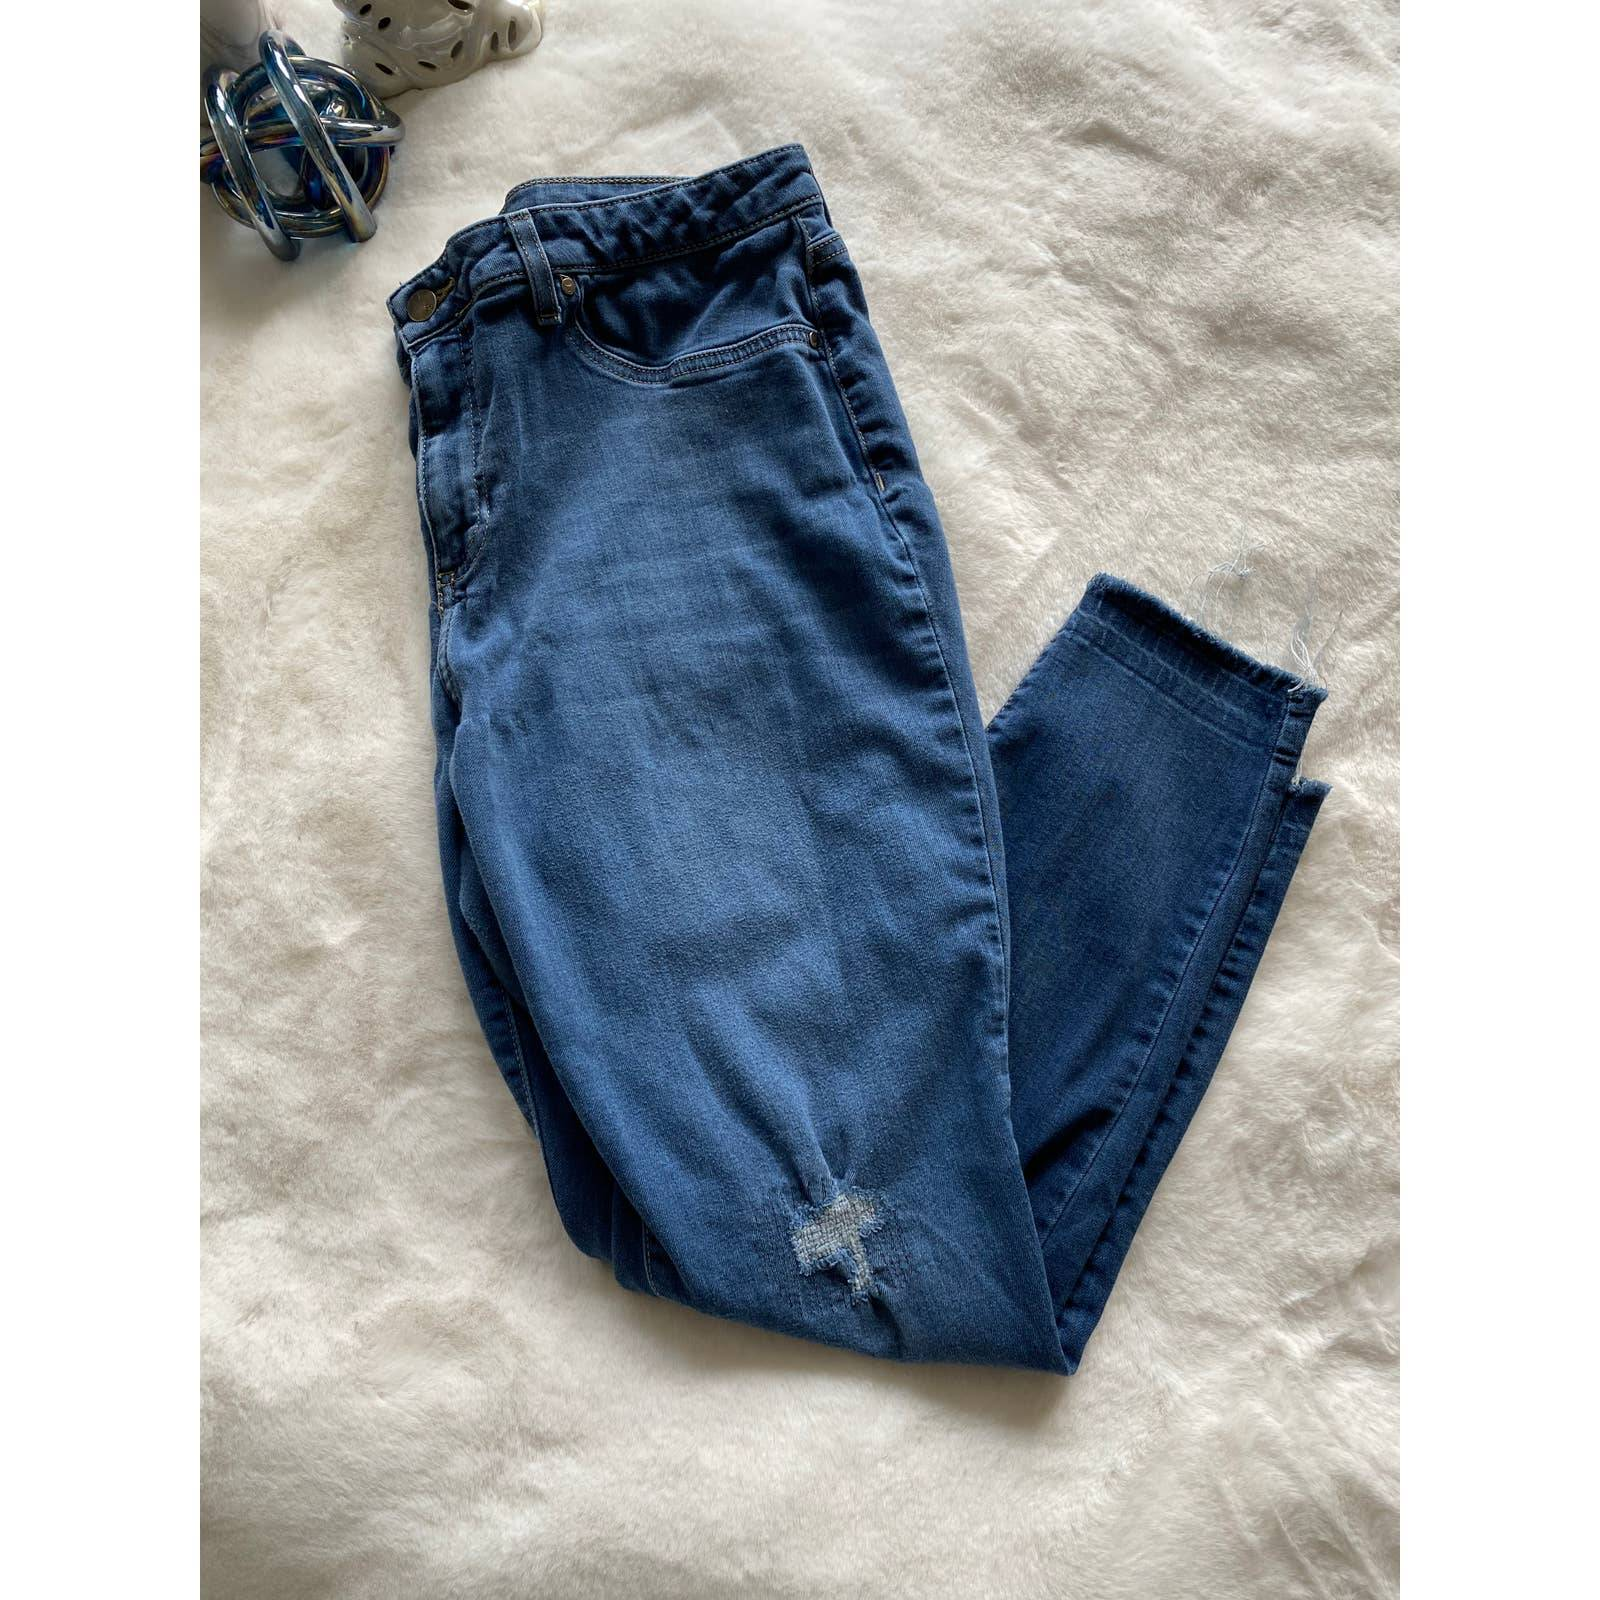 Women Faded Glory Skinny Jeans Size 16